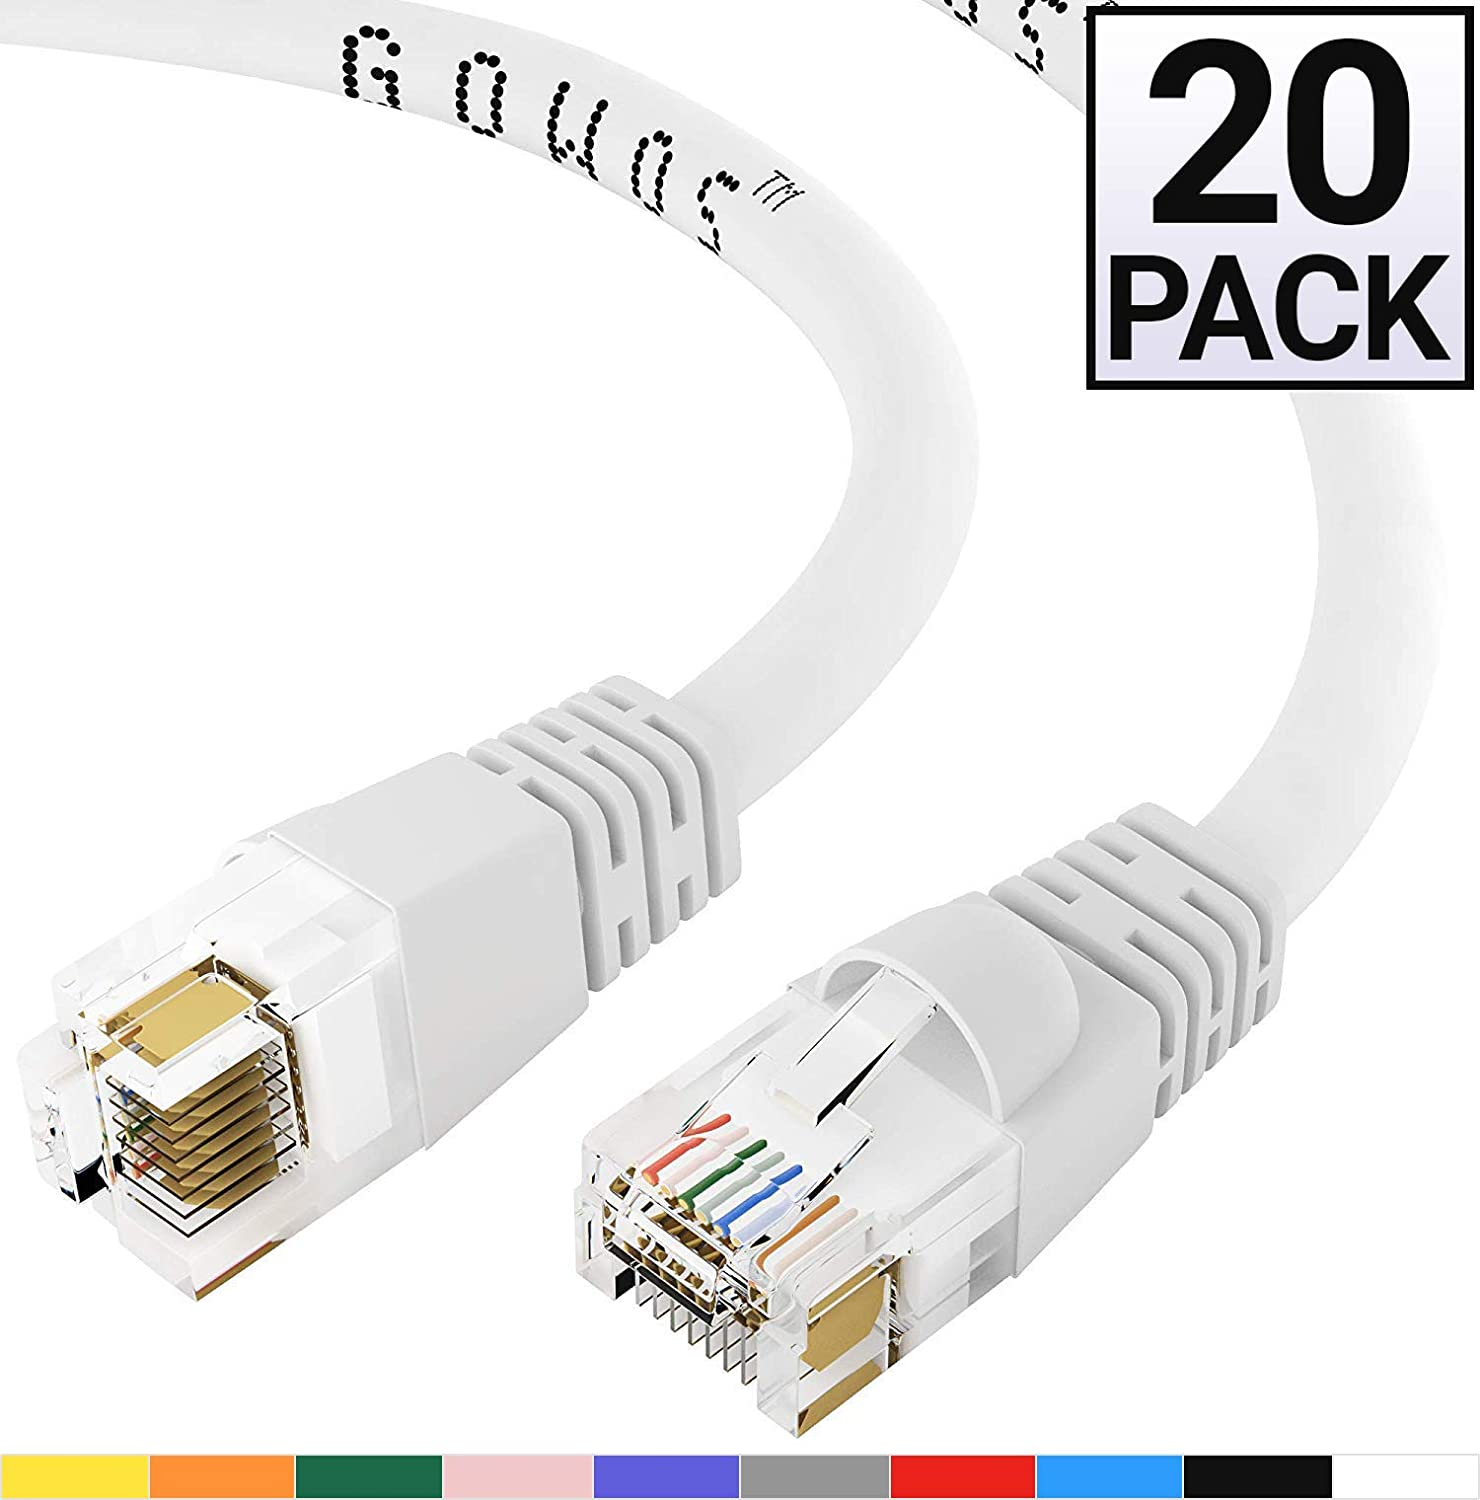 GOWOS 20-Pack, Cat6 Ethernet Cable (6 Feet - White) UTP - Computer Network Cable with Snagless Connector - RJ45 10Gbps High Speed LAN Internet Patch Cord - Available in 28 Lengths and 10 Colors